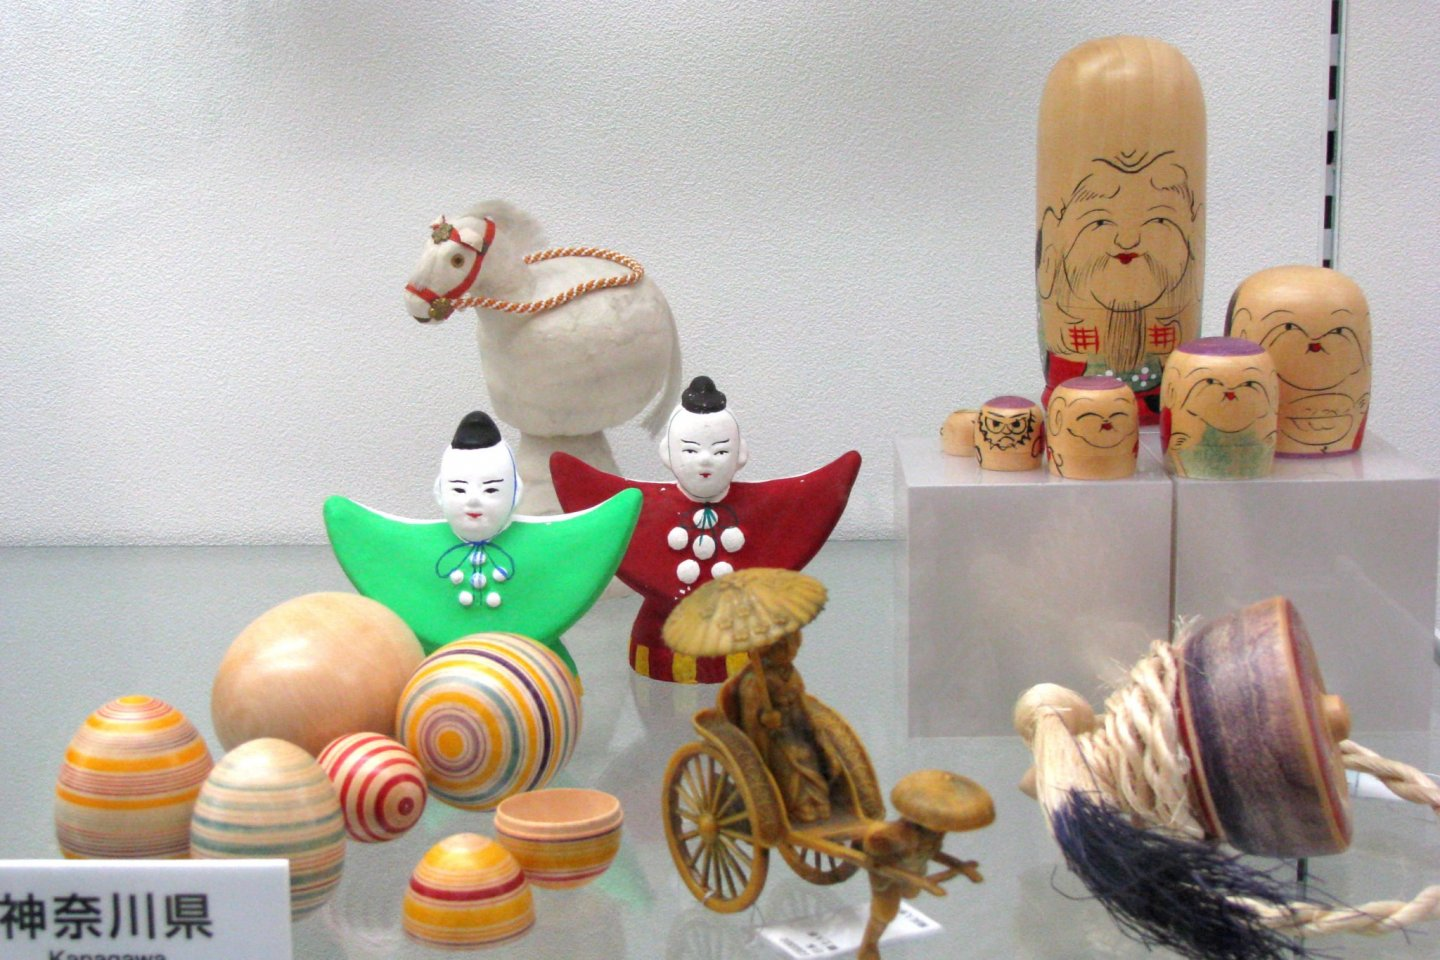 Shichi-fuku-jin on display among other toys produced in Kanagawa